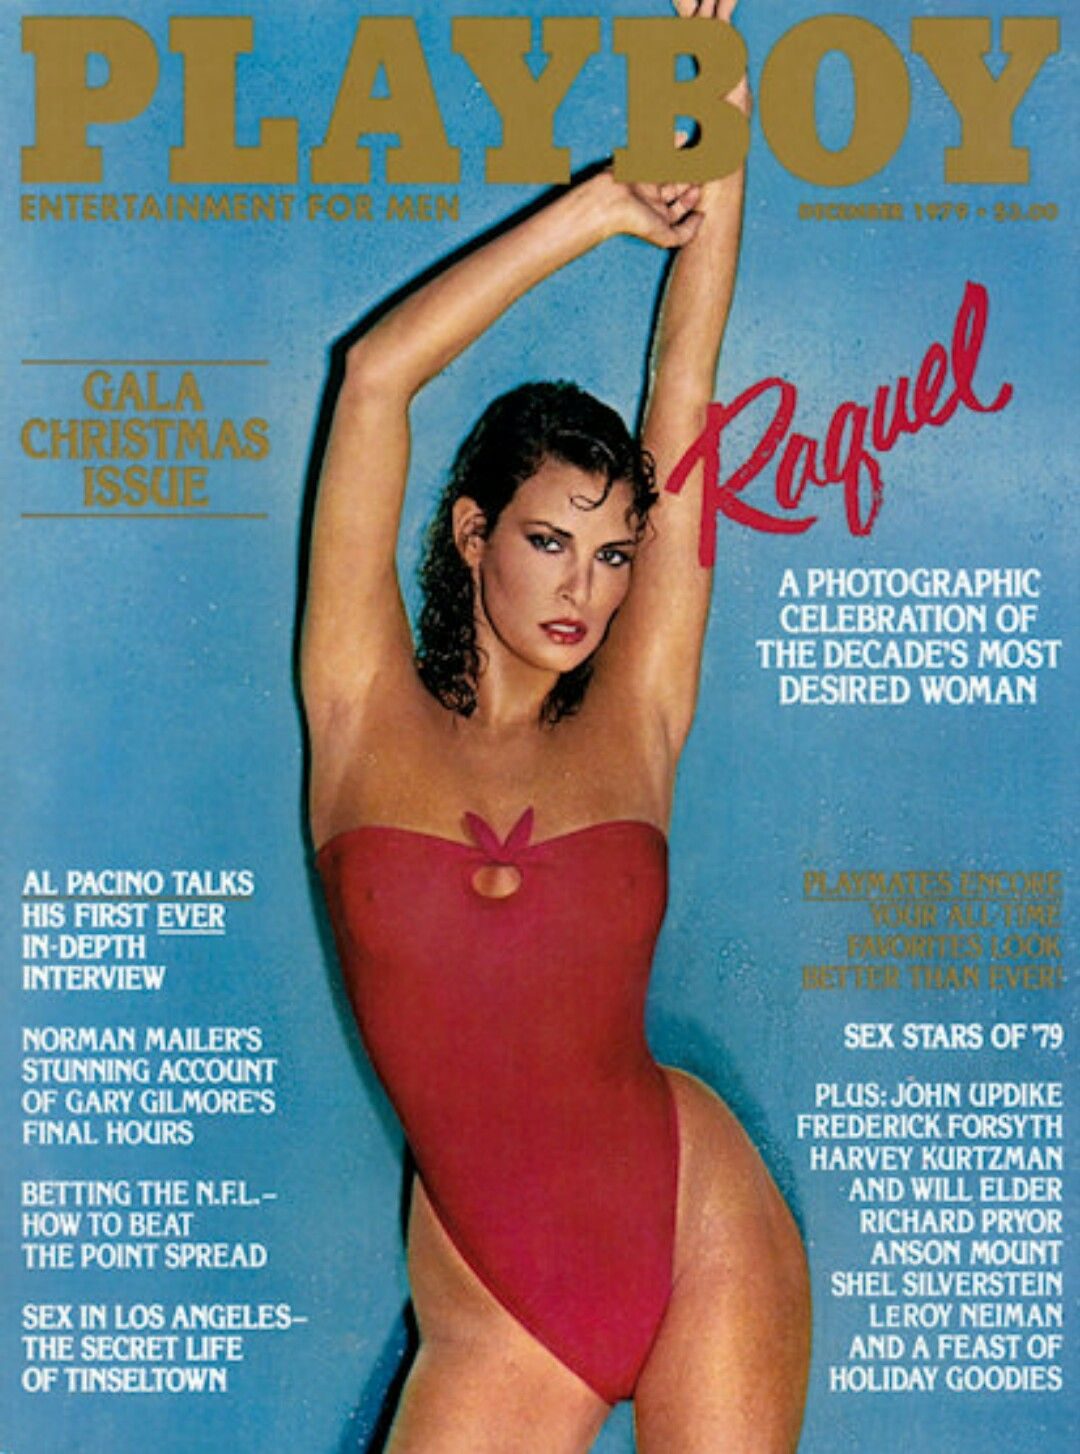 Raquel on the poster of Playboy, she is wearing a red swimsuit